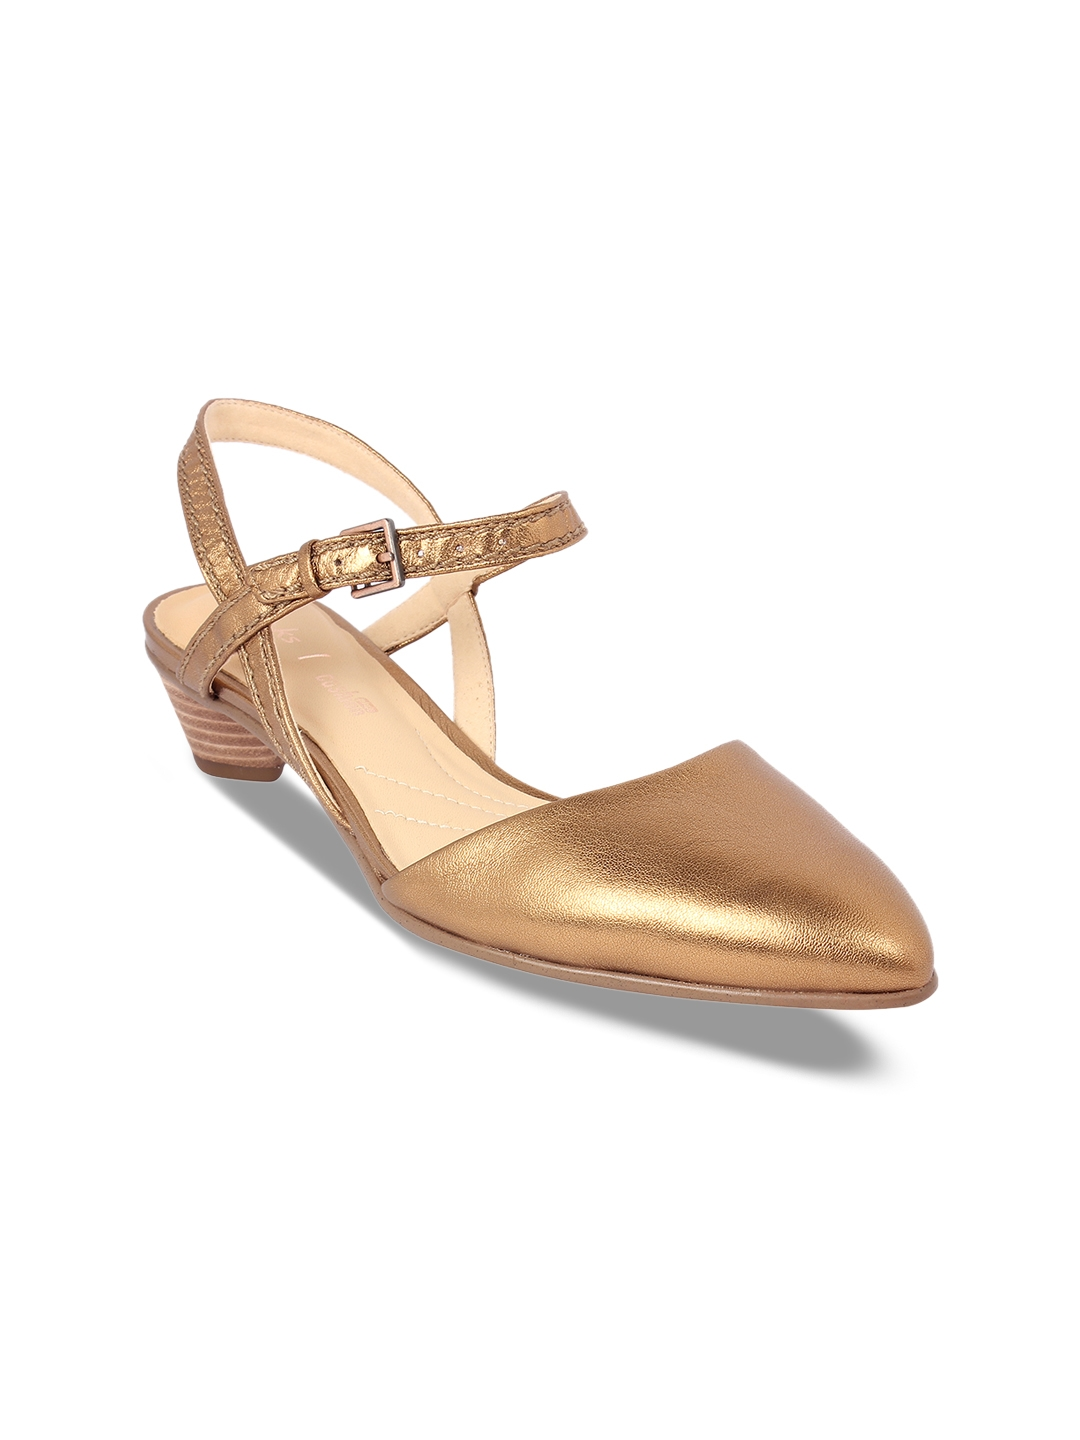 a152814385f4 Buy Clarks Women Gold Toned Solid Leather Sandals - Heels for Women ...